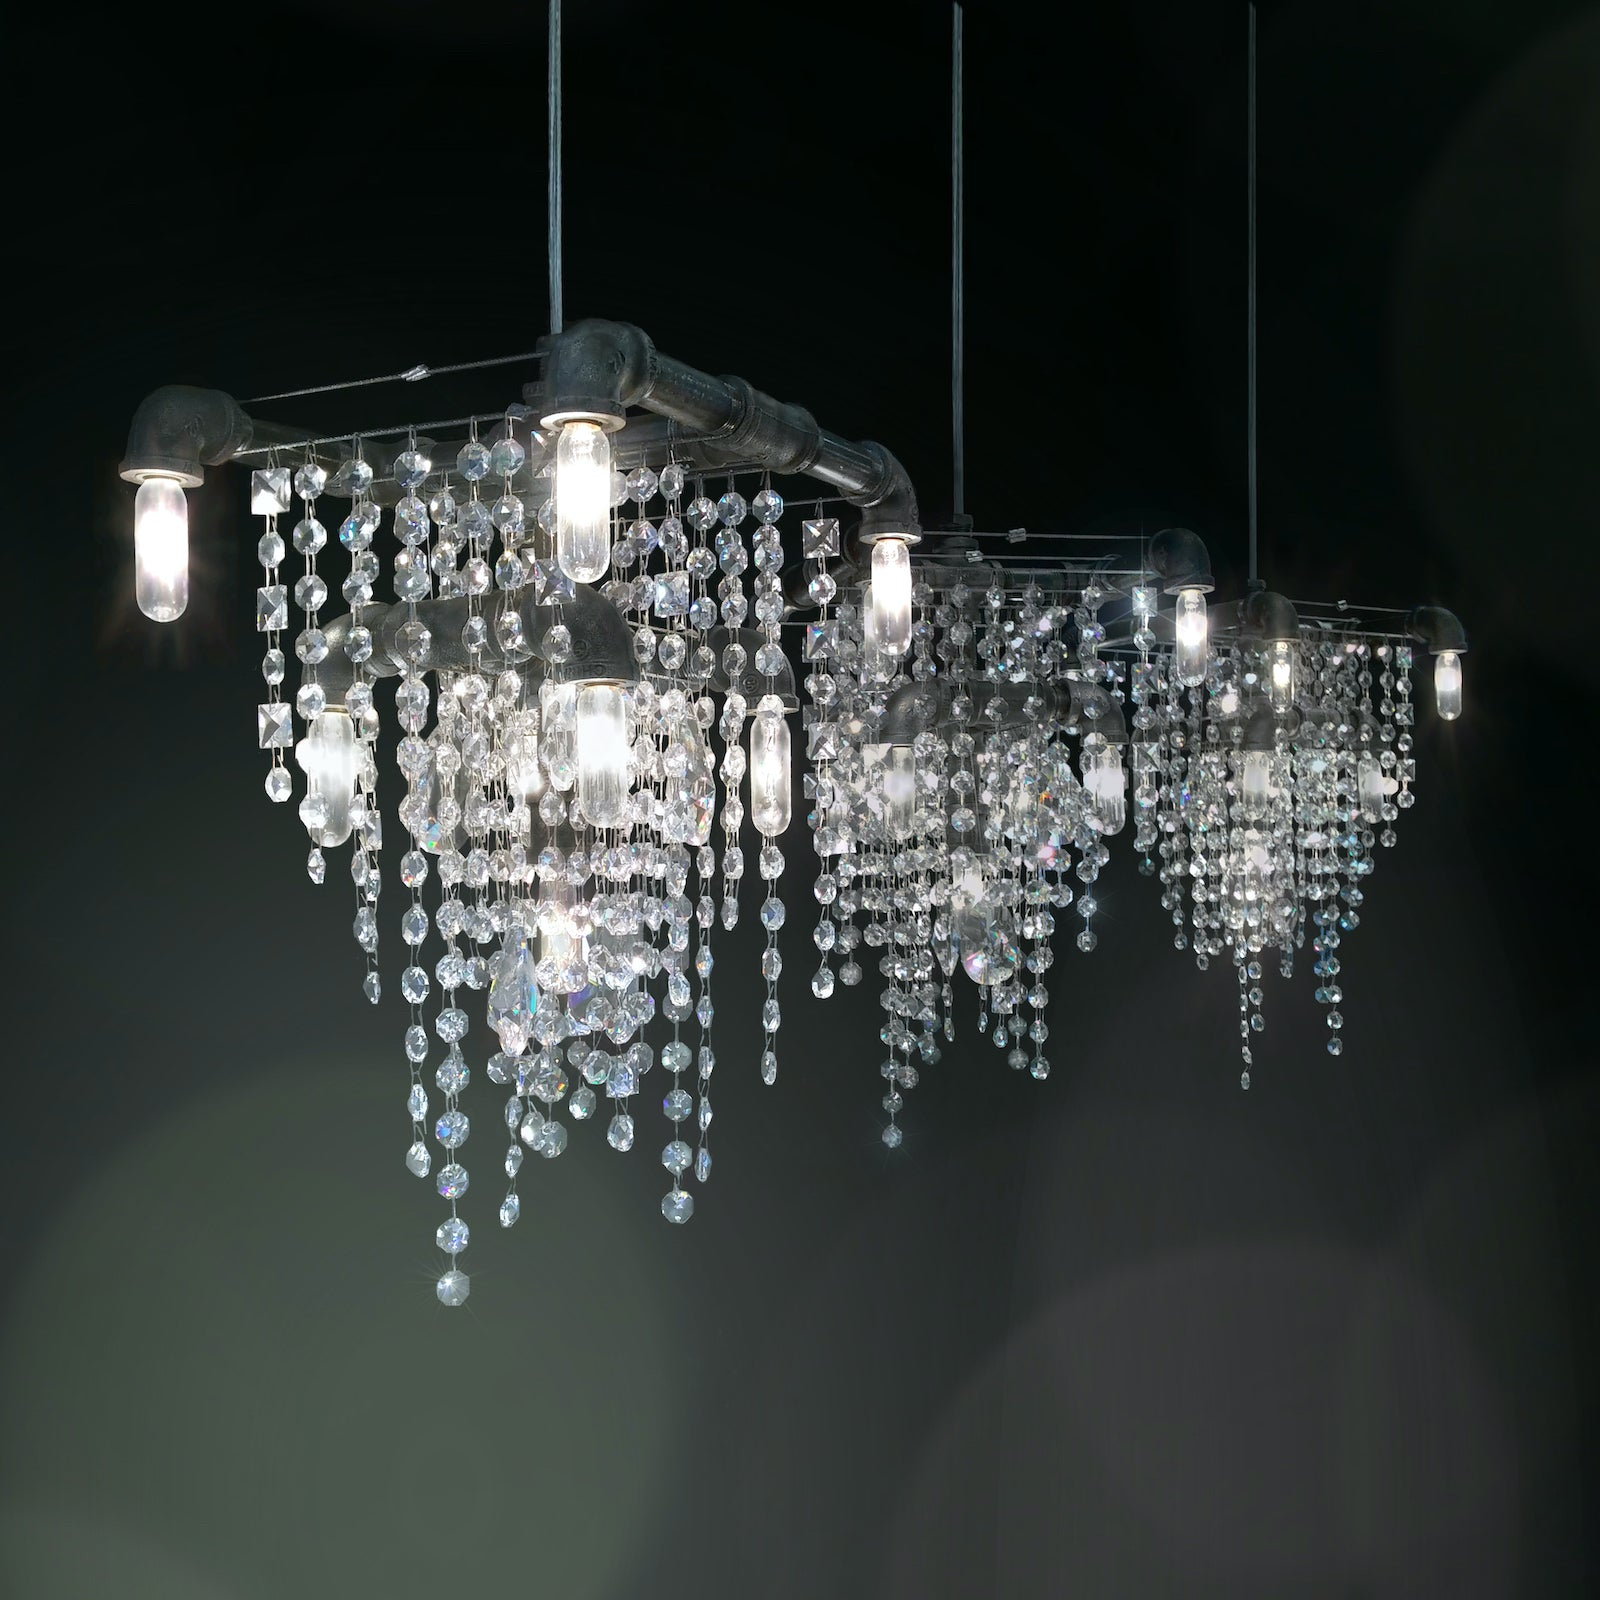 Three Tribeca 9-Bulb Compact Pendant Chandeliers